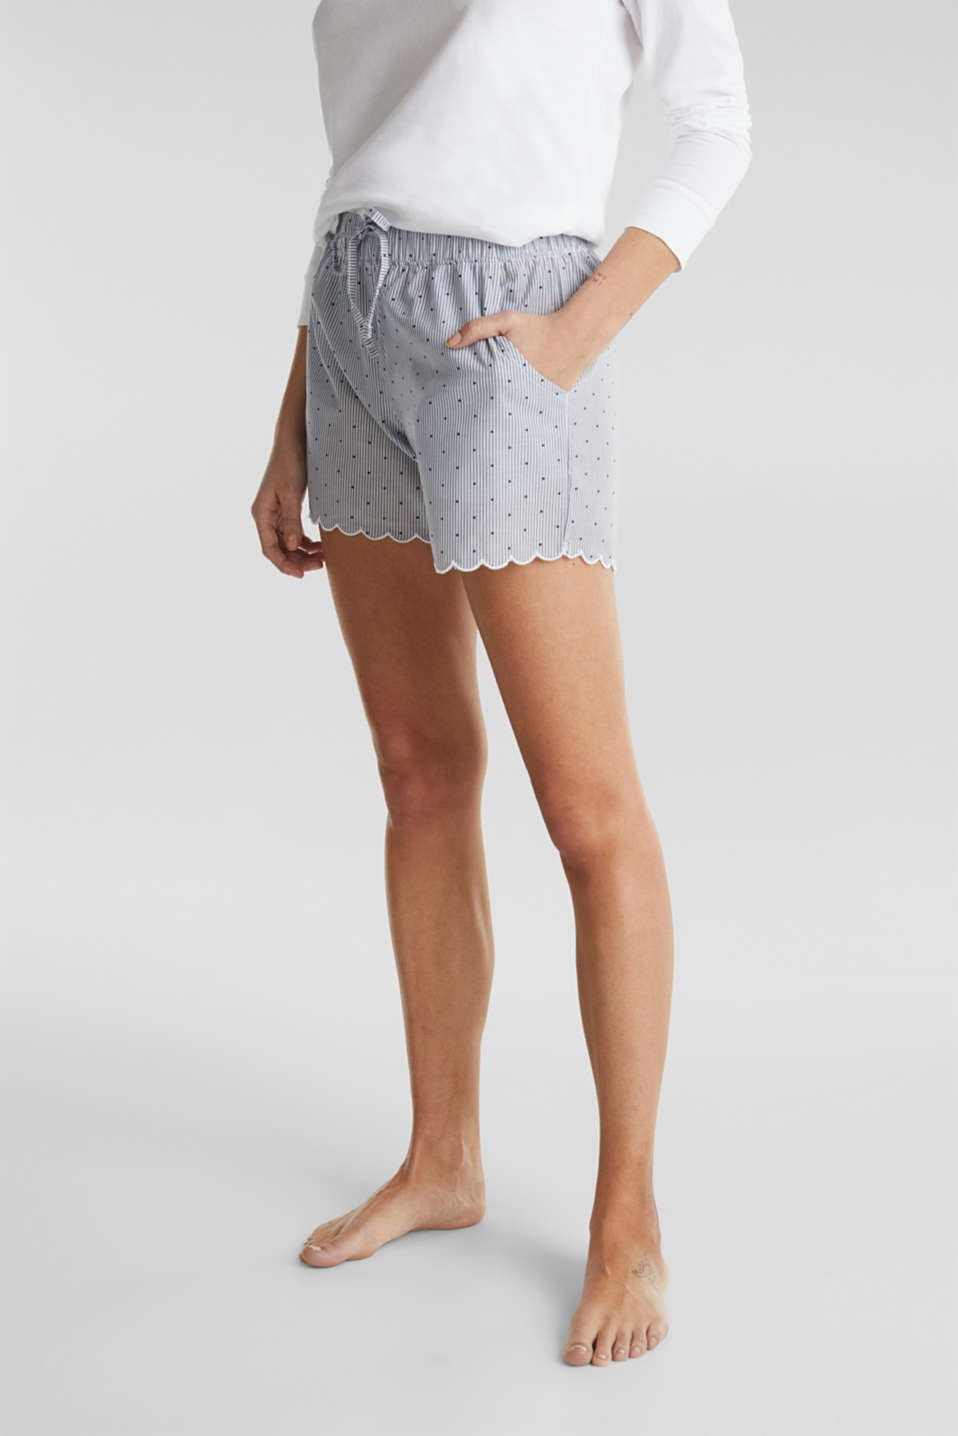 Woven shorts with a mix of patterns, 100% cotton, BLUE LAVENDER, detail image number 6